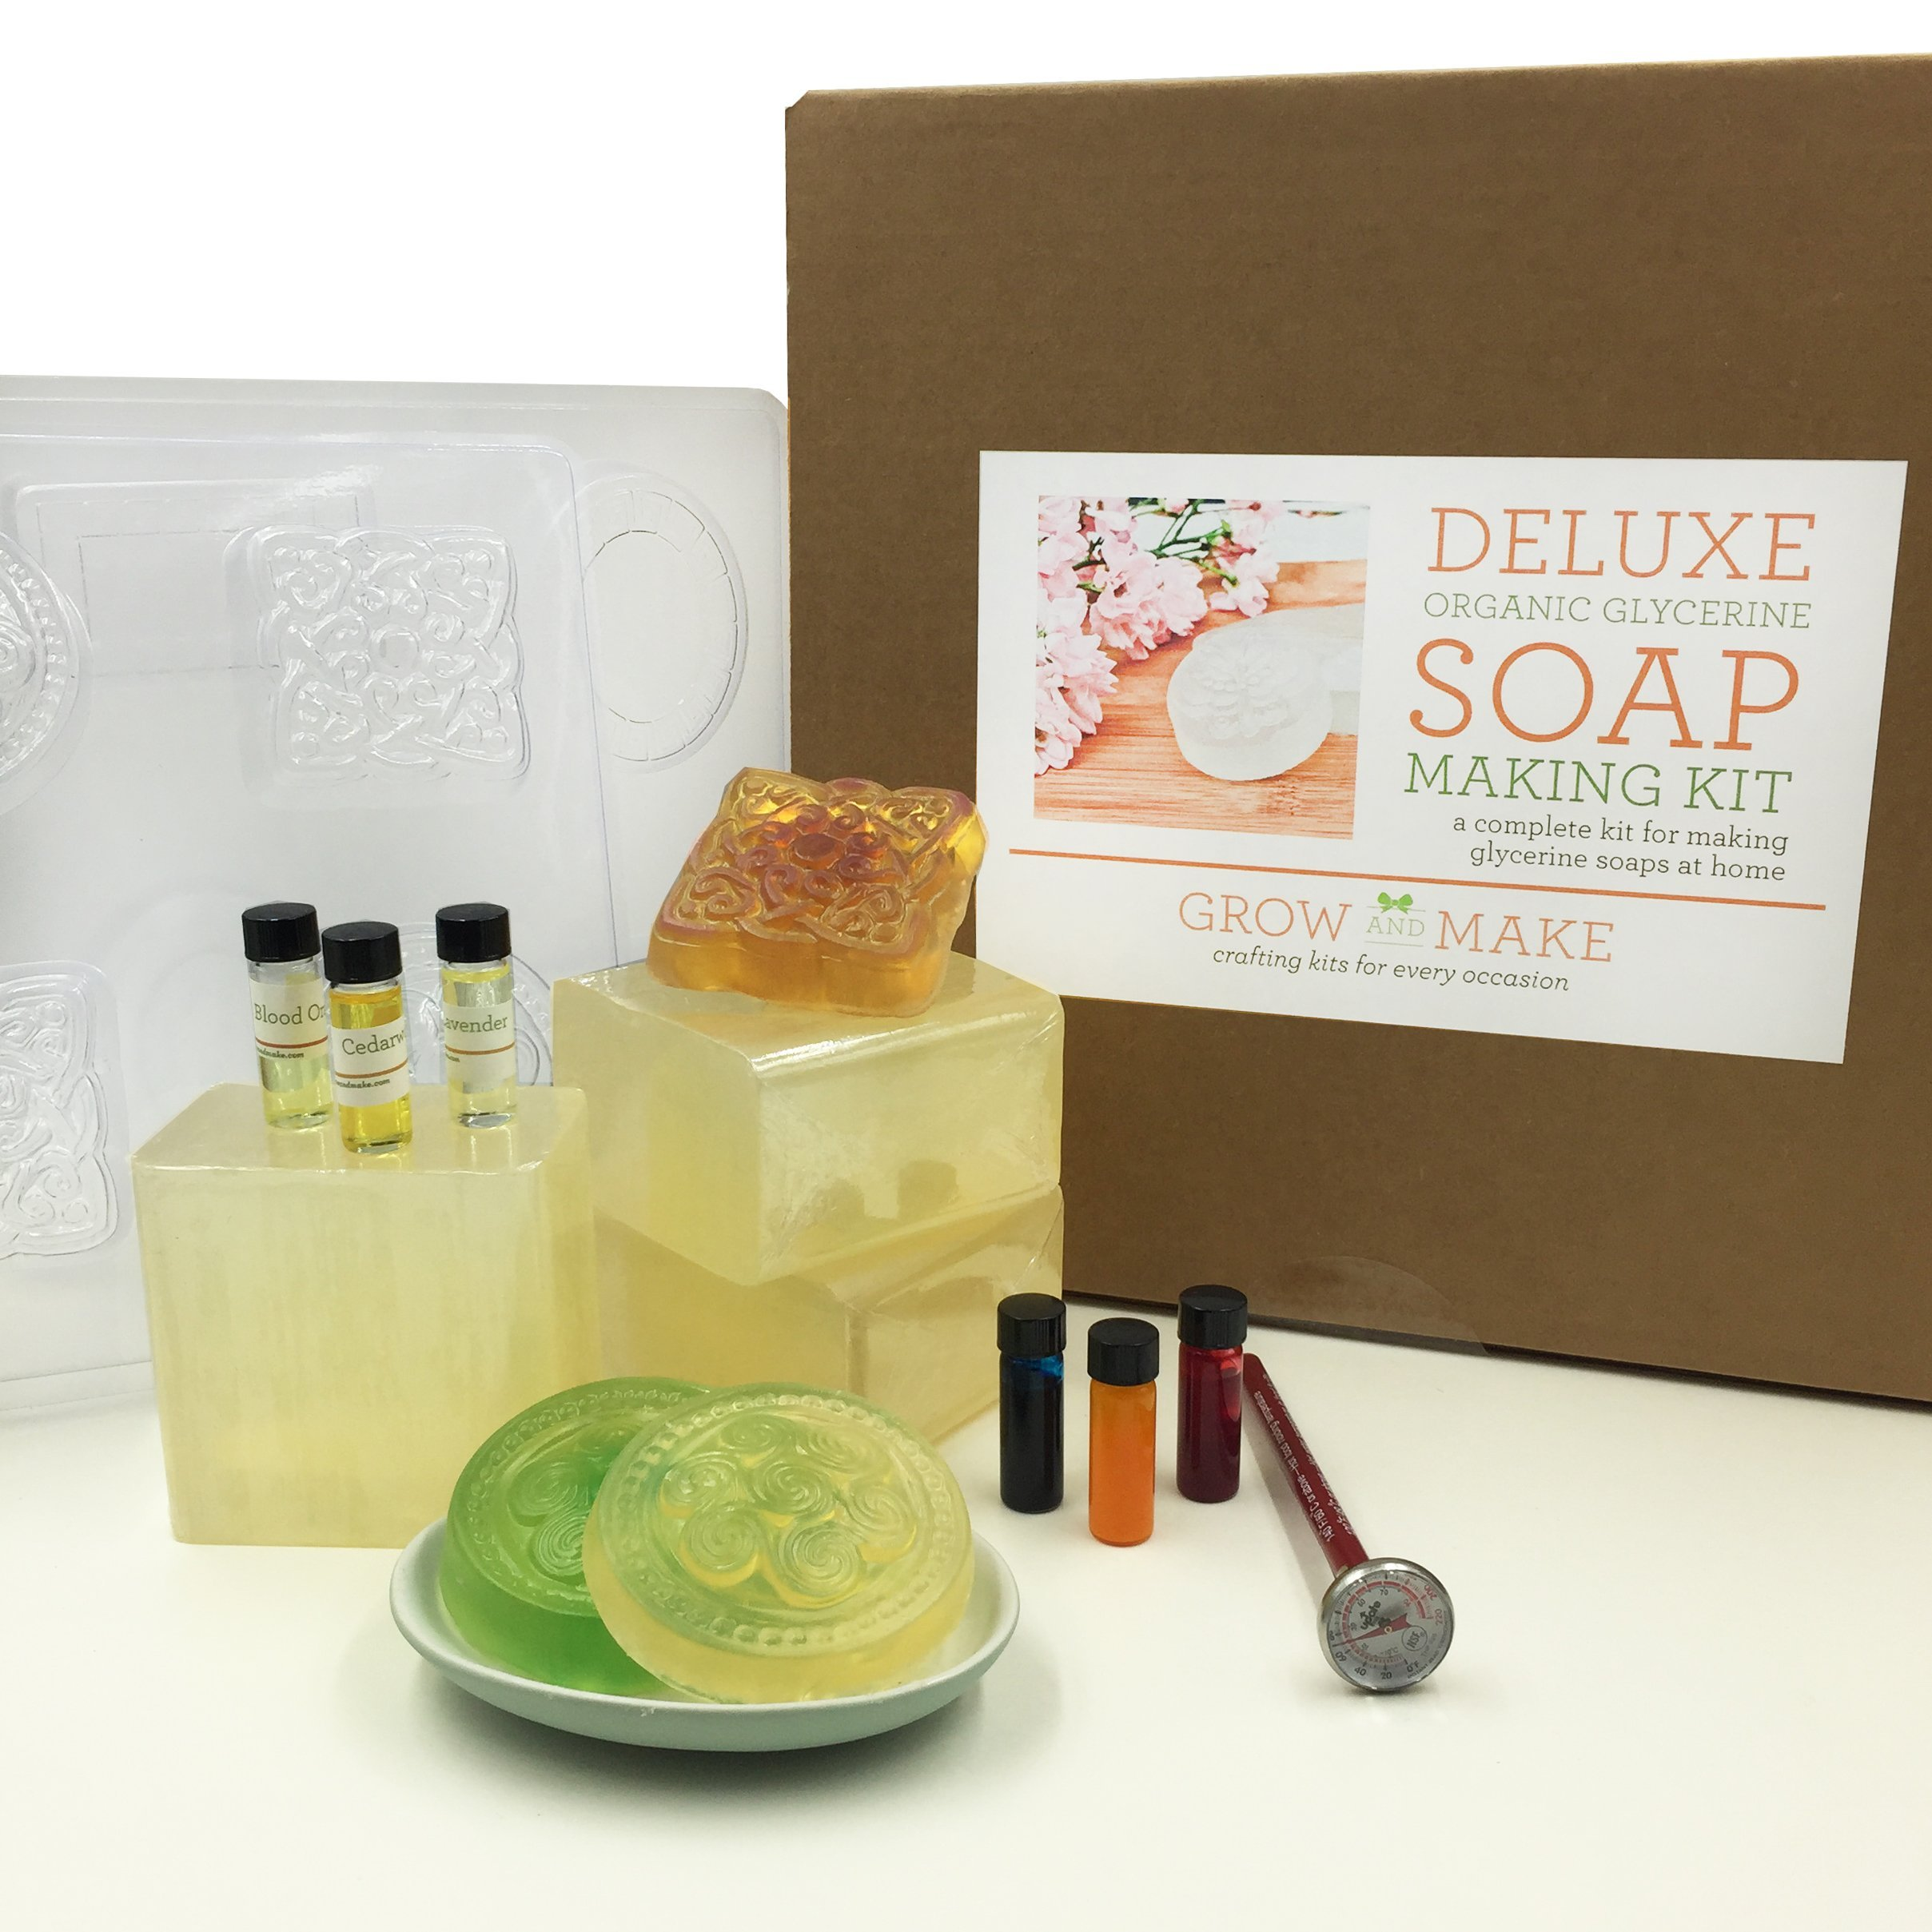 Deluxe Diy Organic Glycerine Soap Making Kit Learn How To Make Home Made Soap 20 50 Bath Body Beauty Modalyst W Soap Making Kits Soap Making Soap Kit